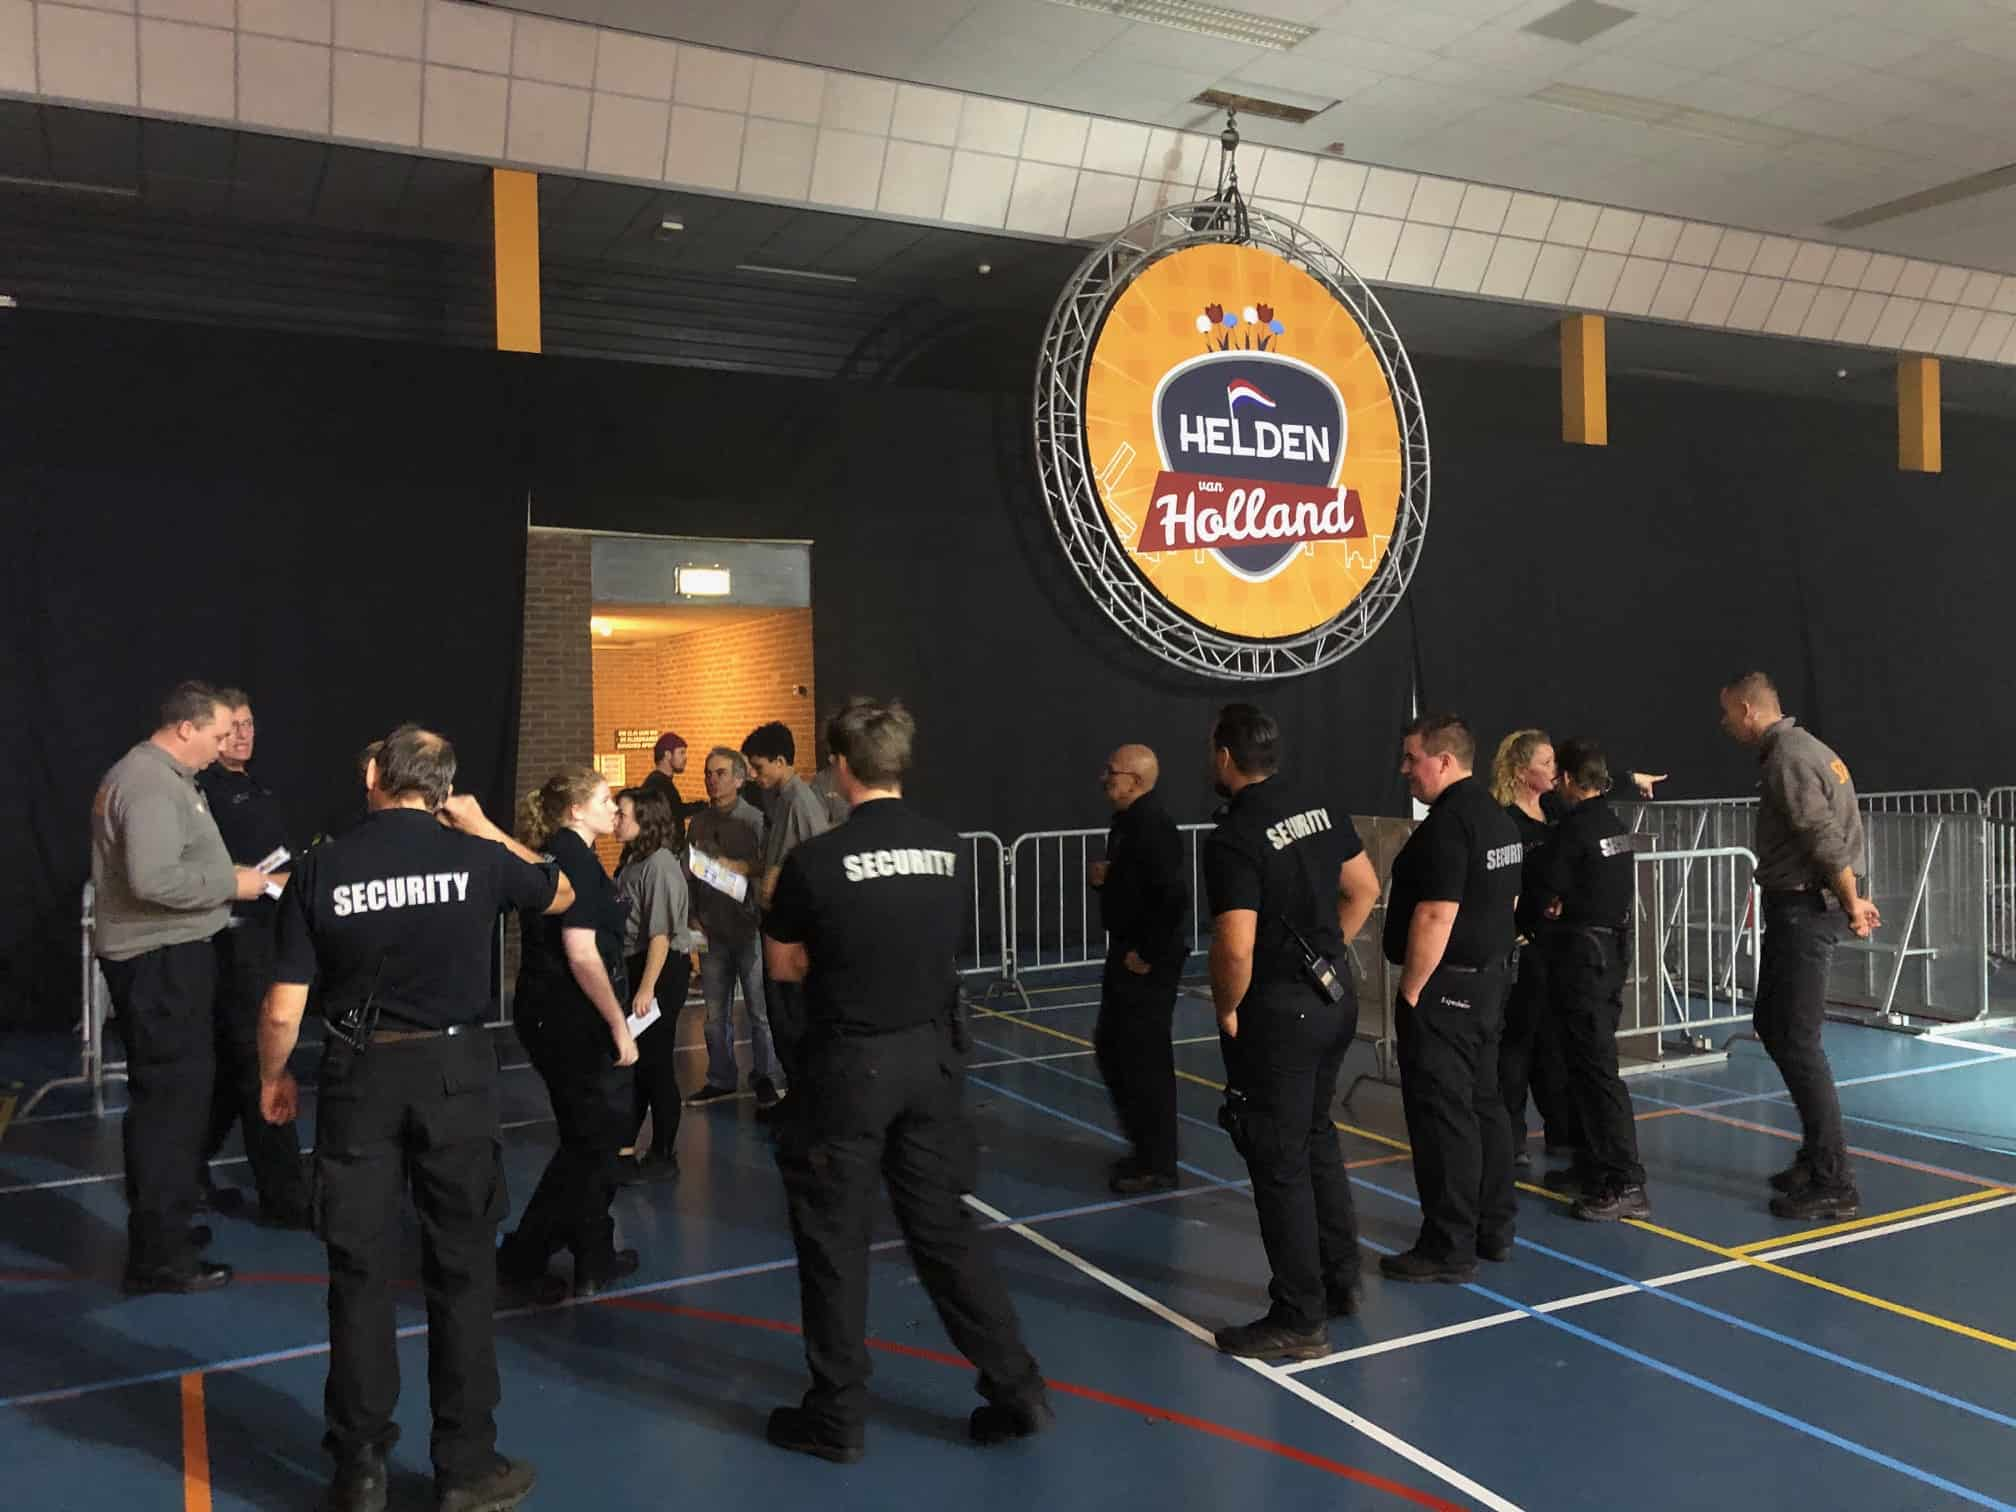 triple f security - 11 - festival - beveiliging